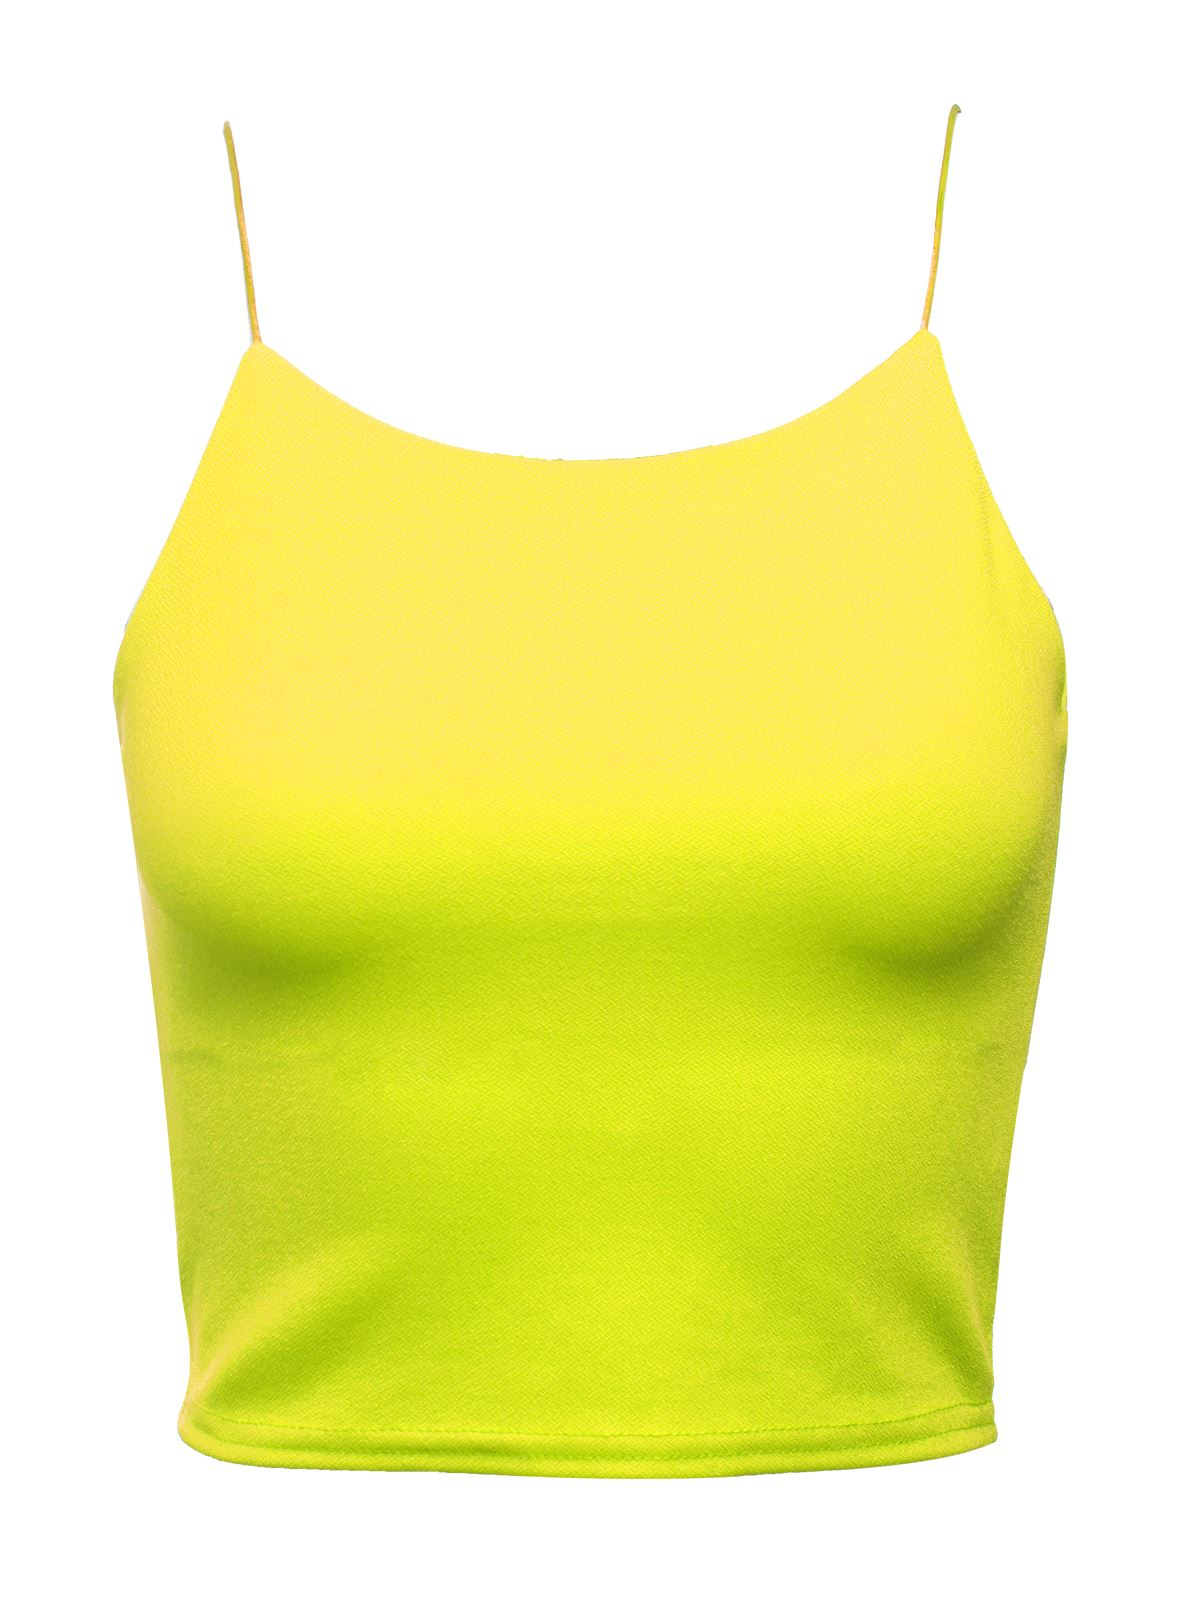 Womens-Ladies-Bralet-Crop-Strappy-Cami-Sleeveless-Camisole-Stretch-Vest-Top